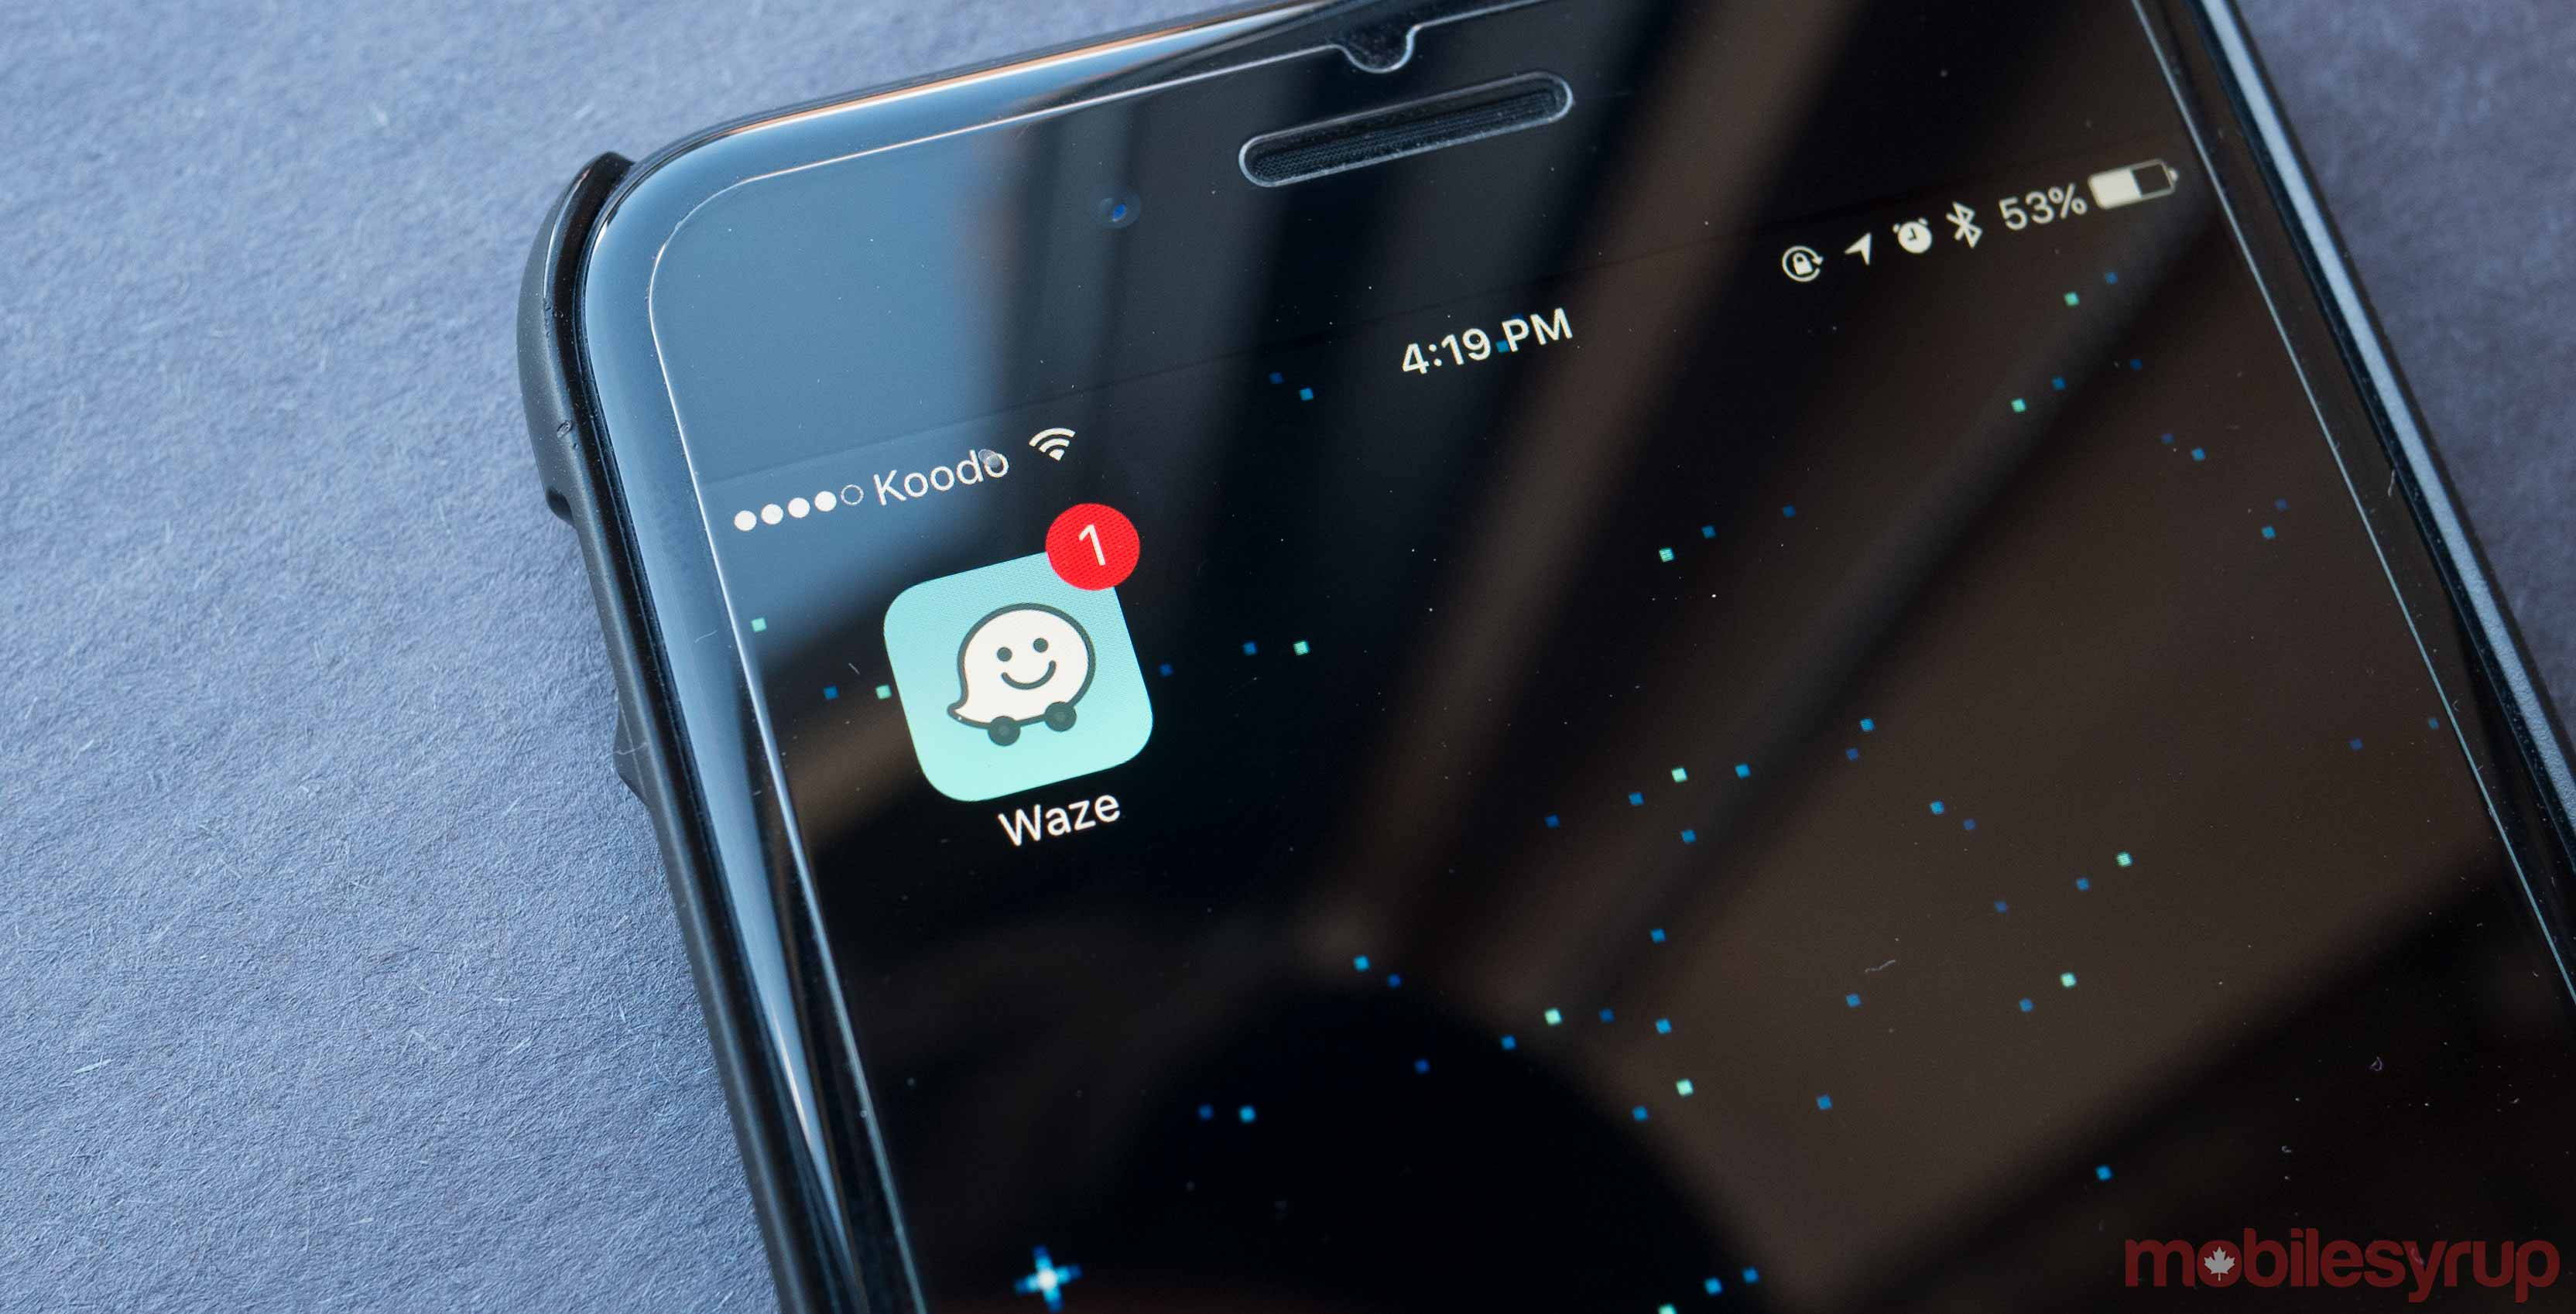 How to stop Waze from gobbling up your iPhone's battery life when